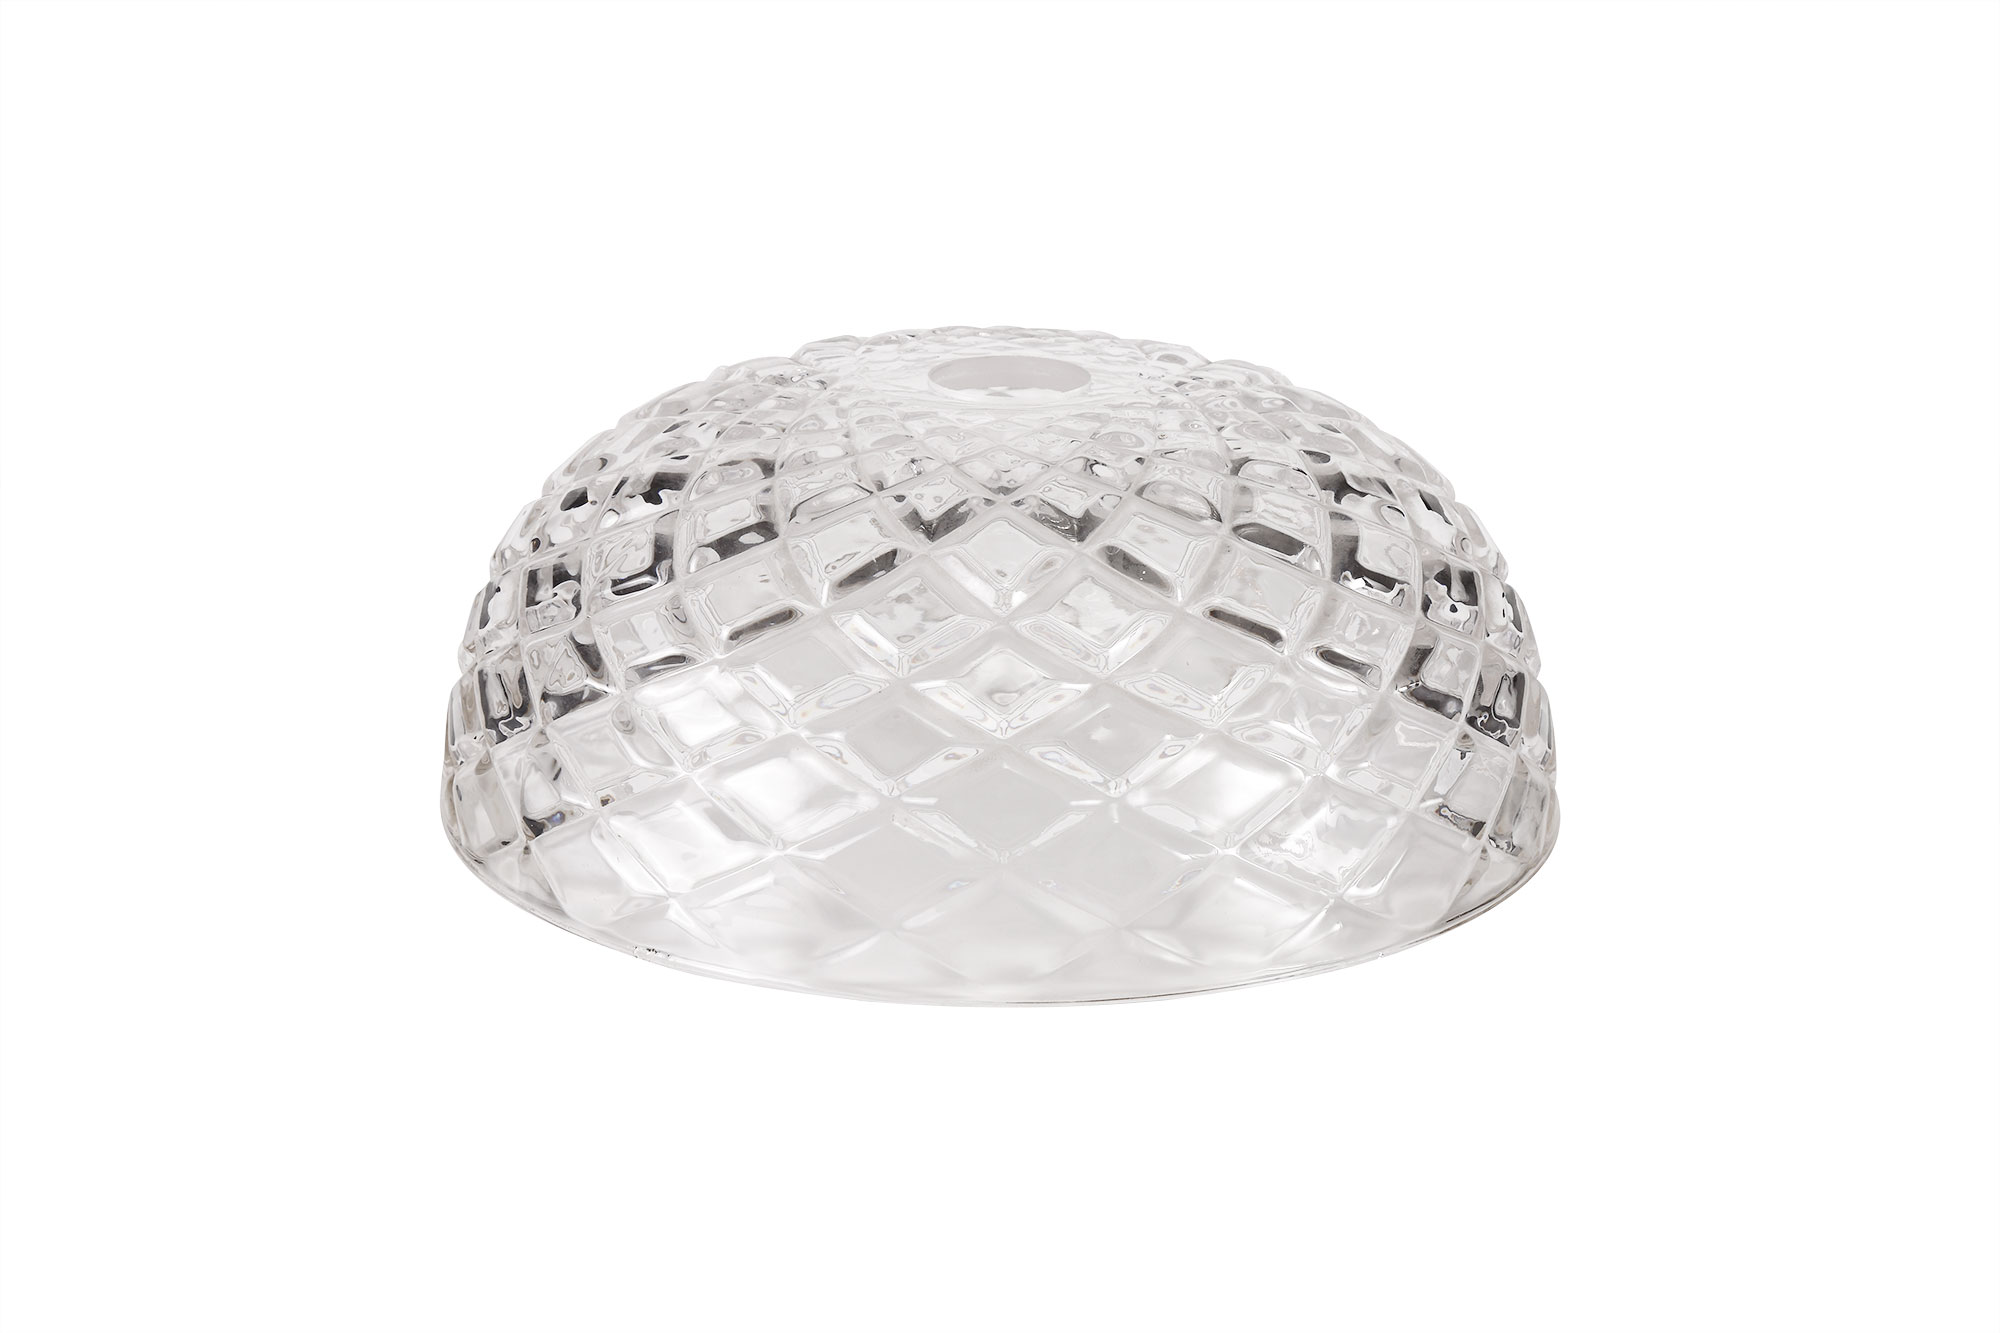 Pendant With 30cm Flat Round Patterned Shade, 1 x E27